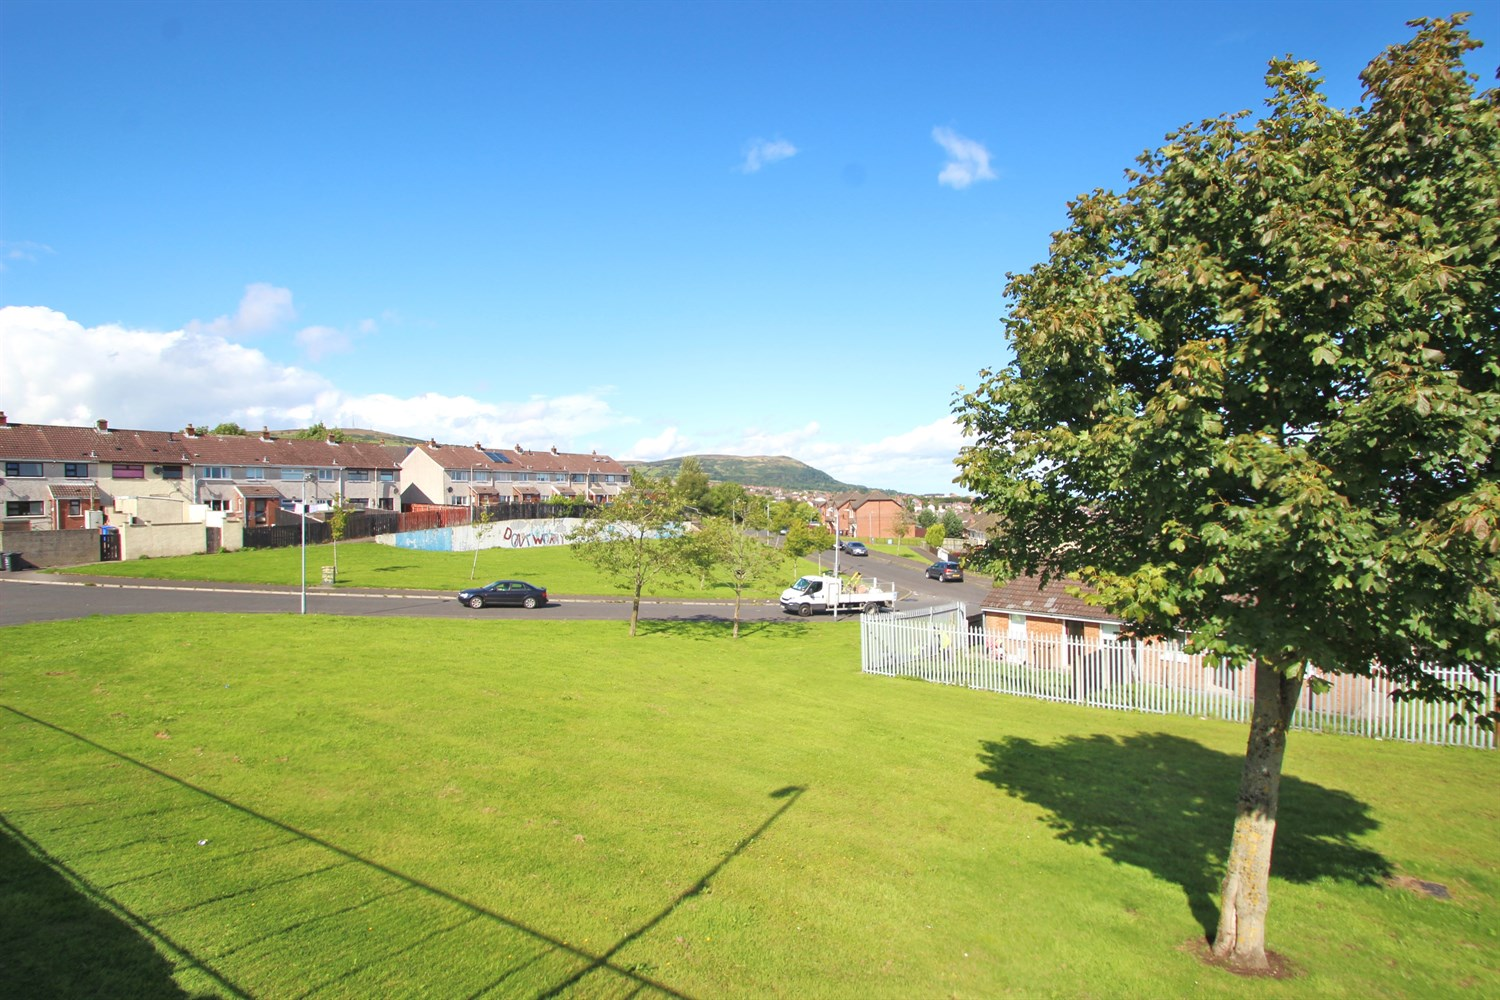 4 Glencairn Way, Forthriver Road, Belfast, BT13 3TD